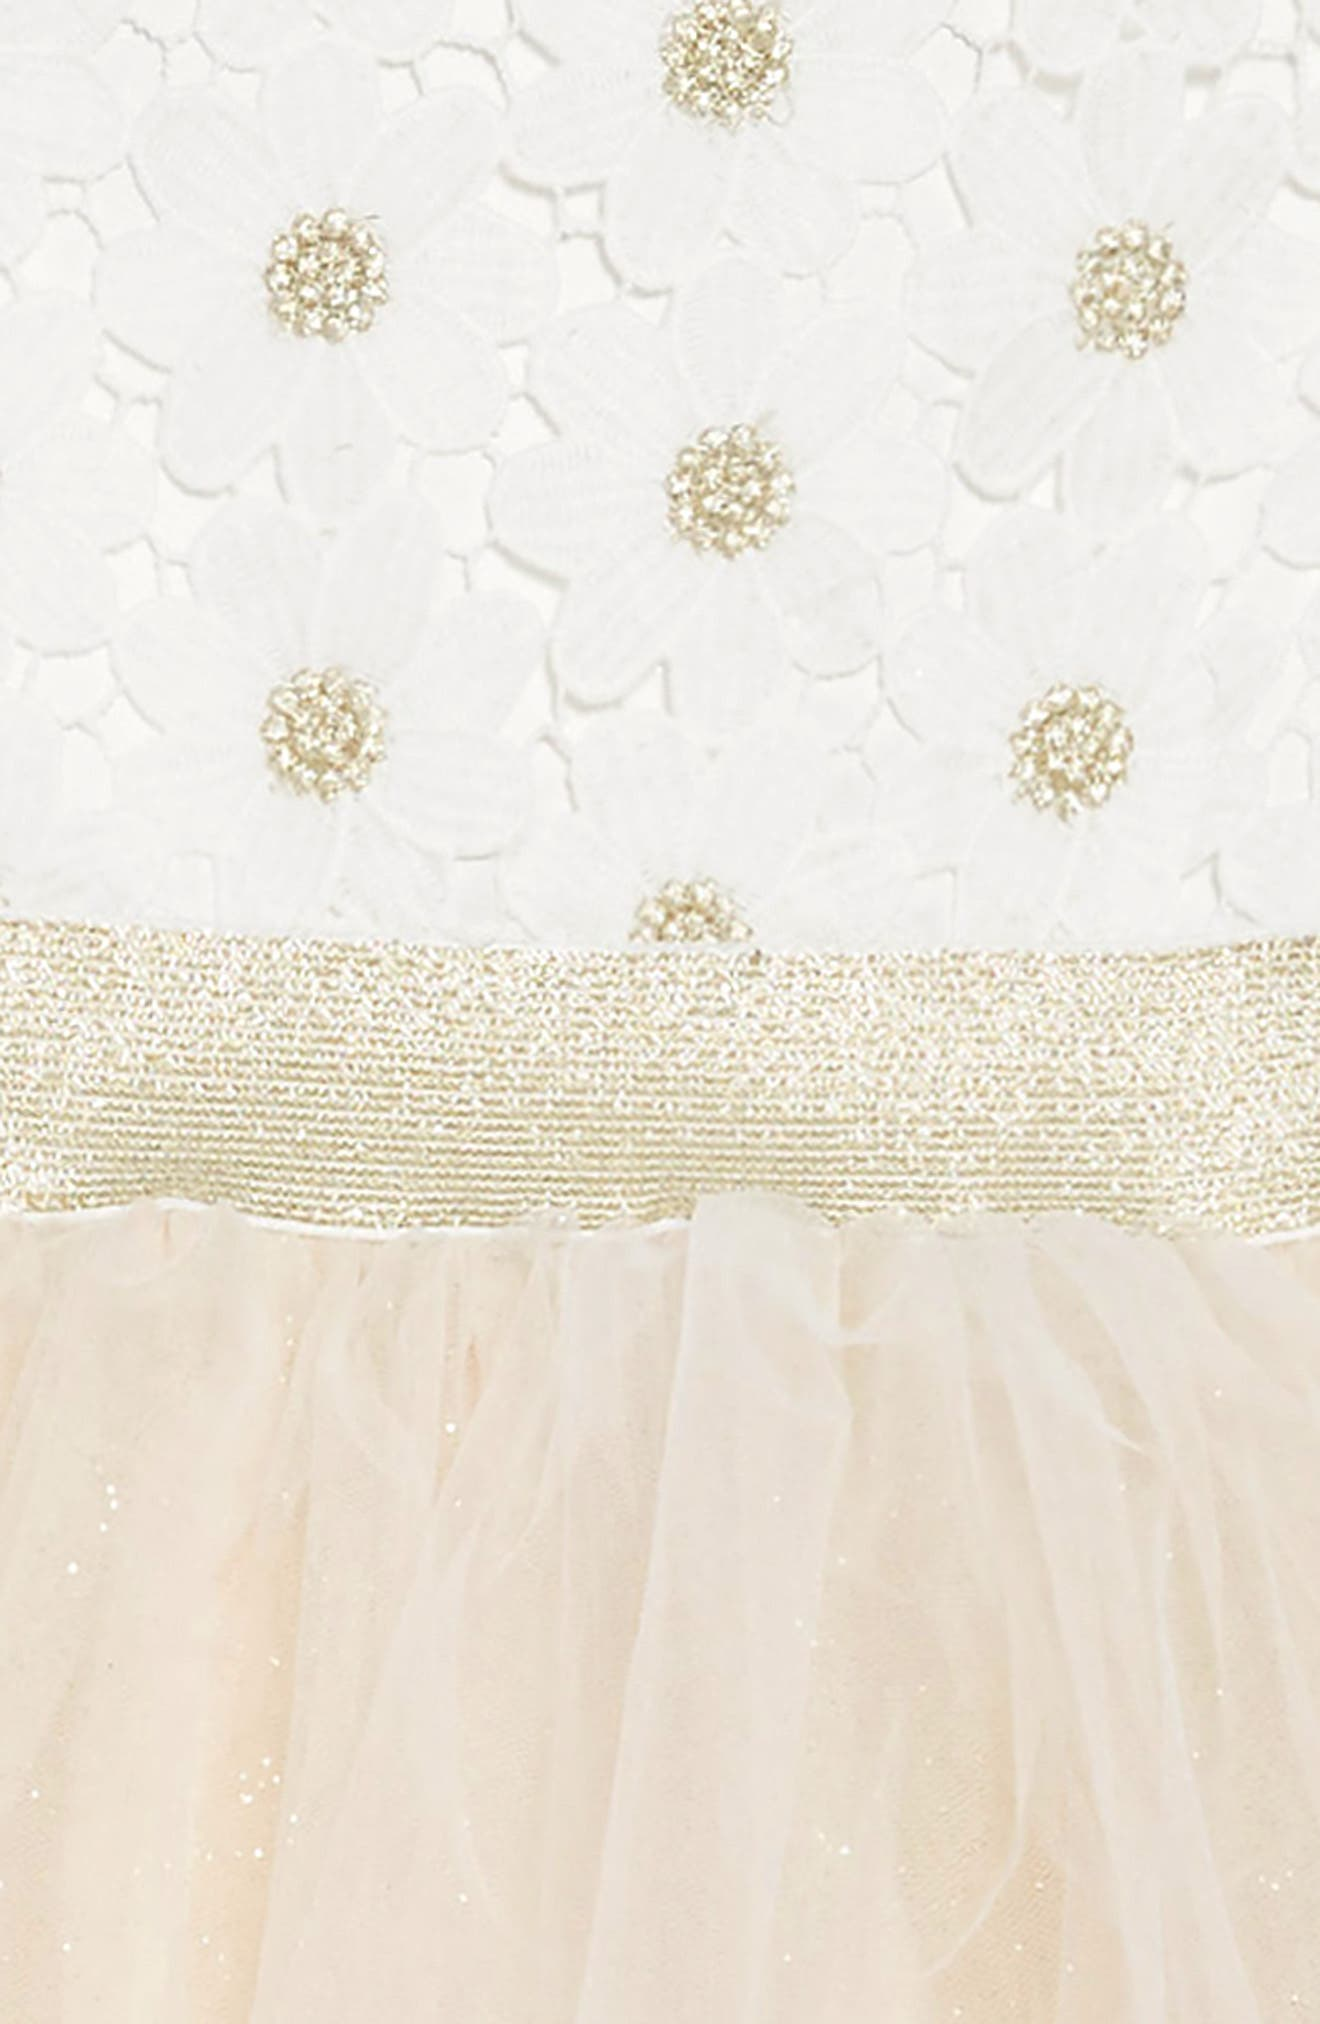 Daisy Fit & Flare Dress,                             Alternate thumbnail 3, color,                             IVORY/ CHAMPAGNE